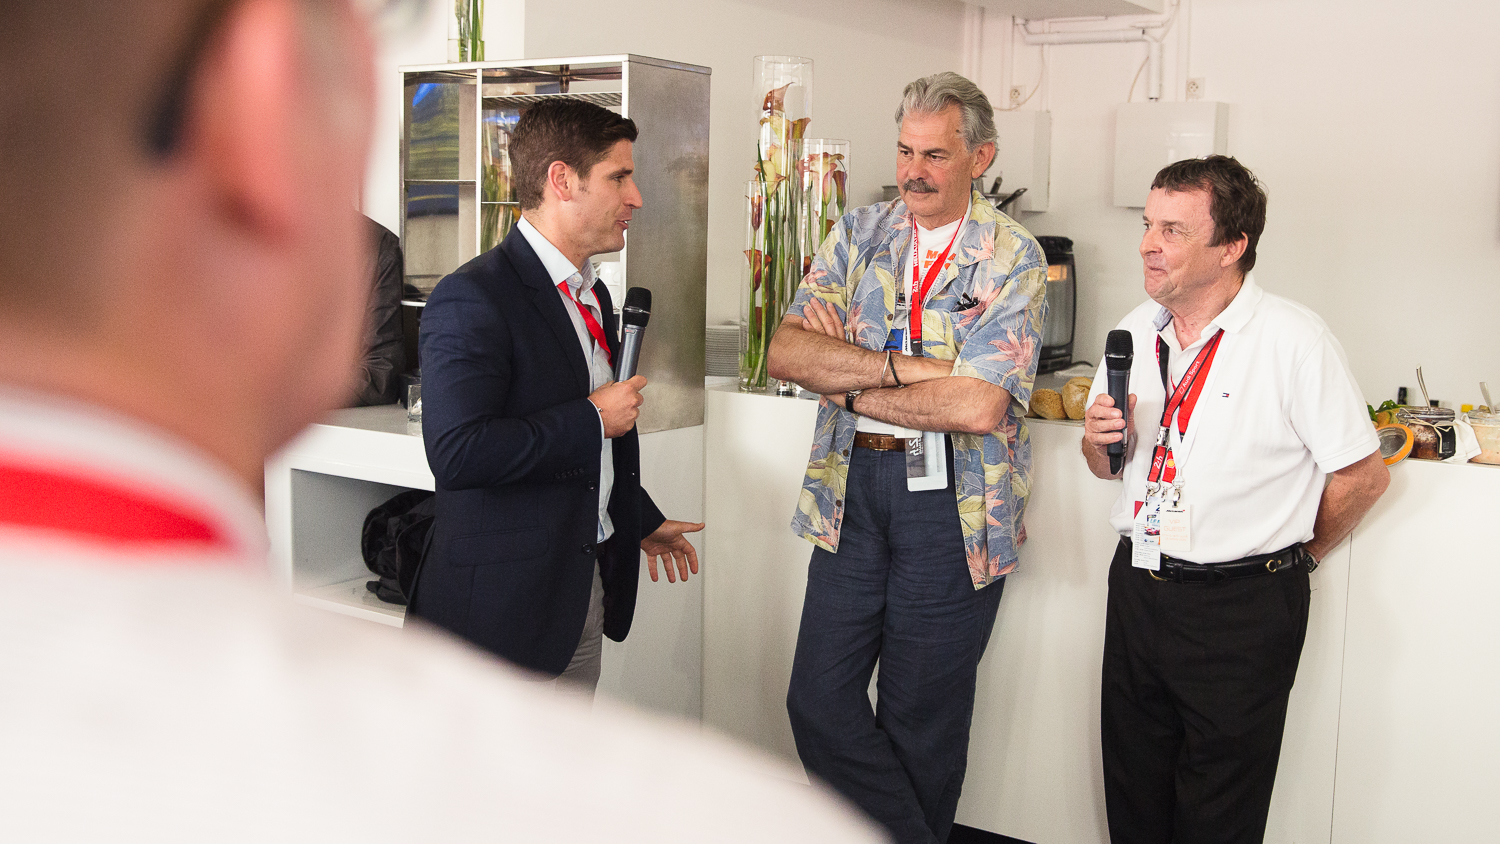 Chris Lawton interviewing Gordon Murray and Jeff Hazell about the McLaren F1